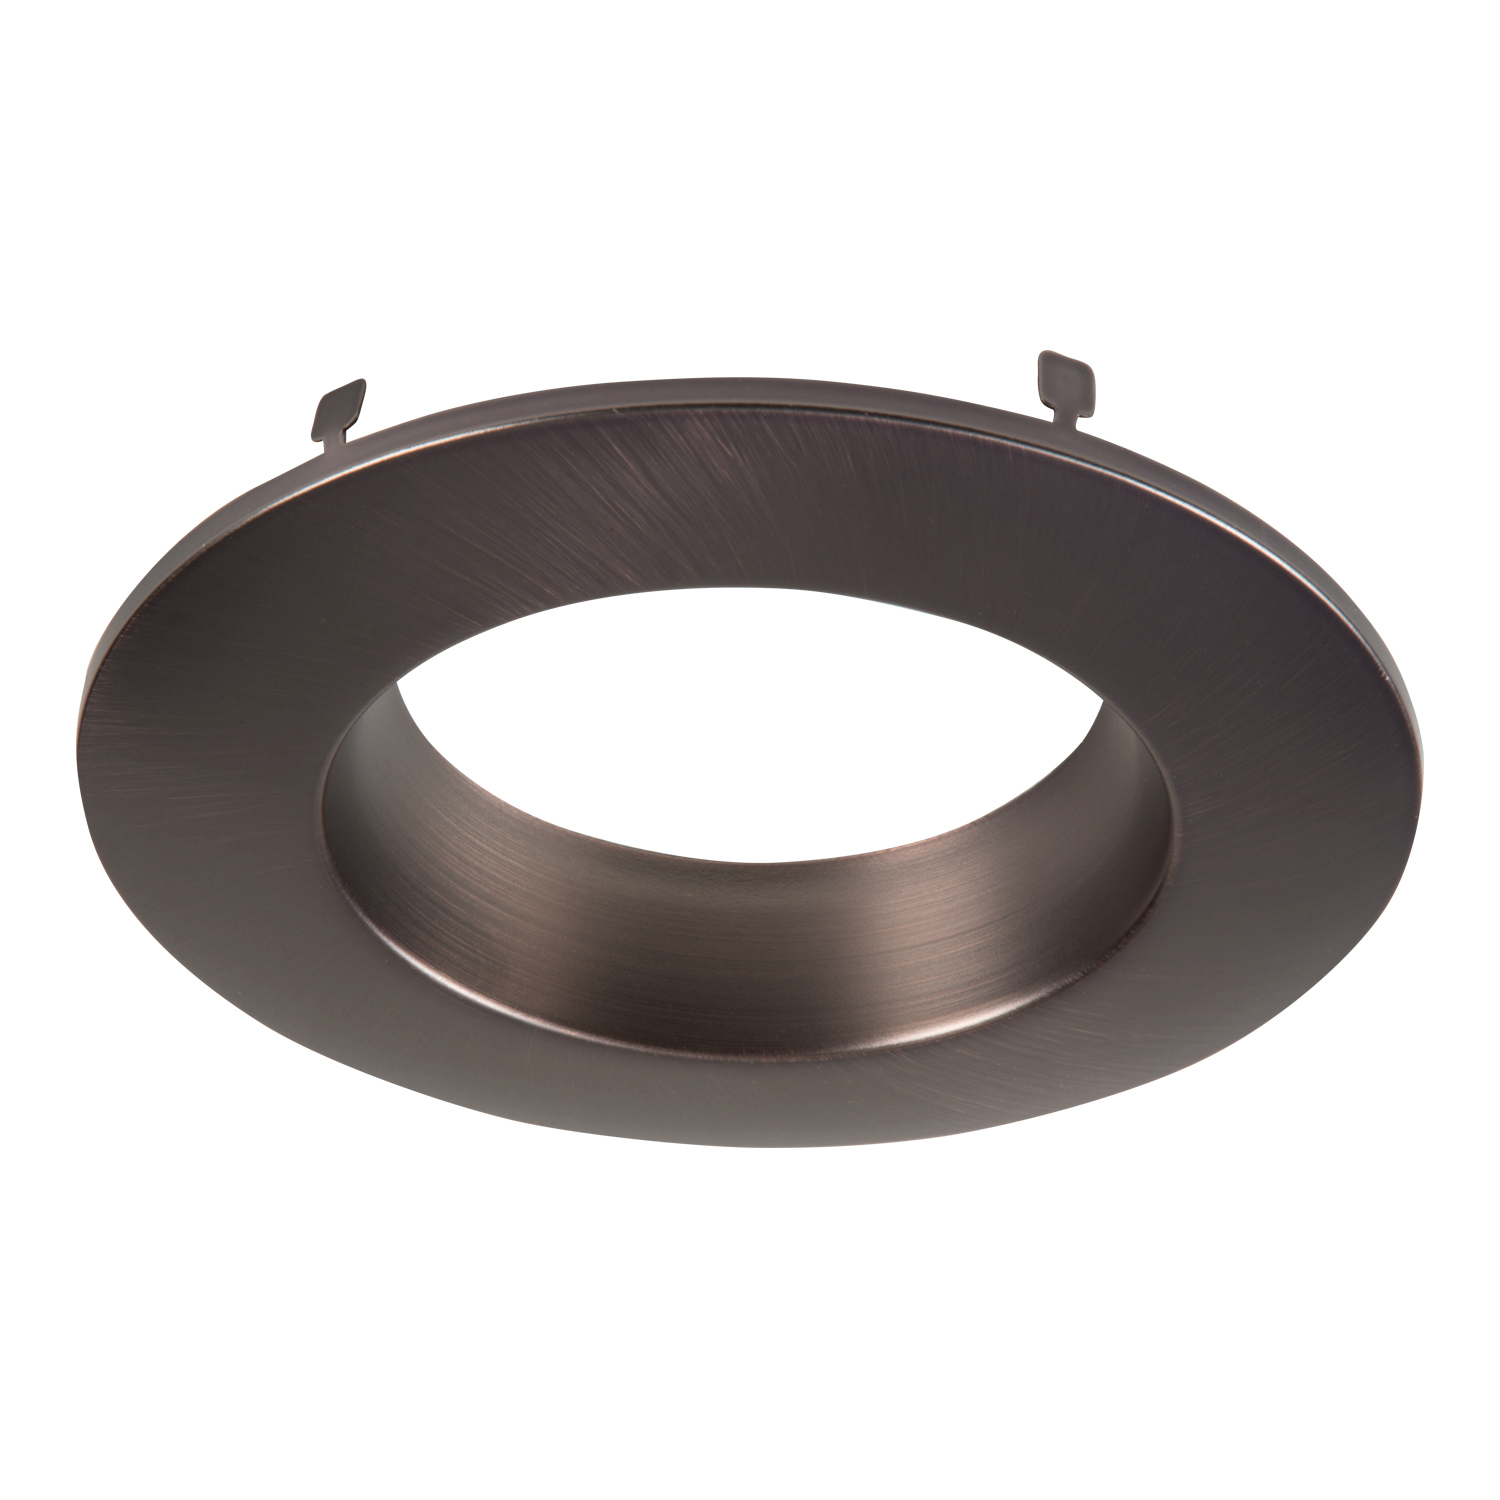 Halo - Recessed,RL56TRMTBZ,5/6